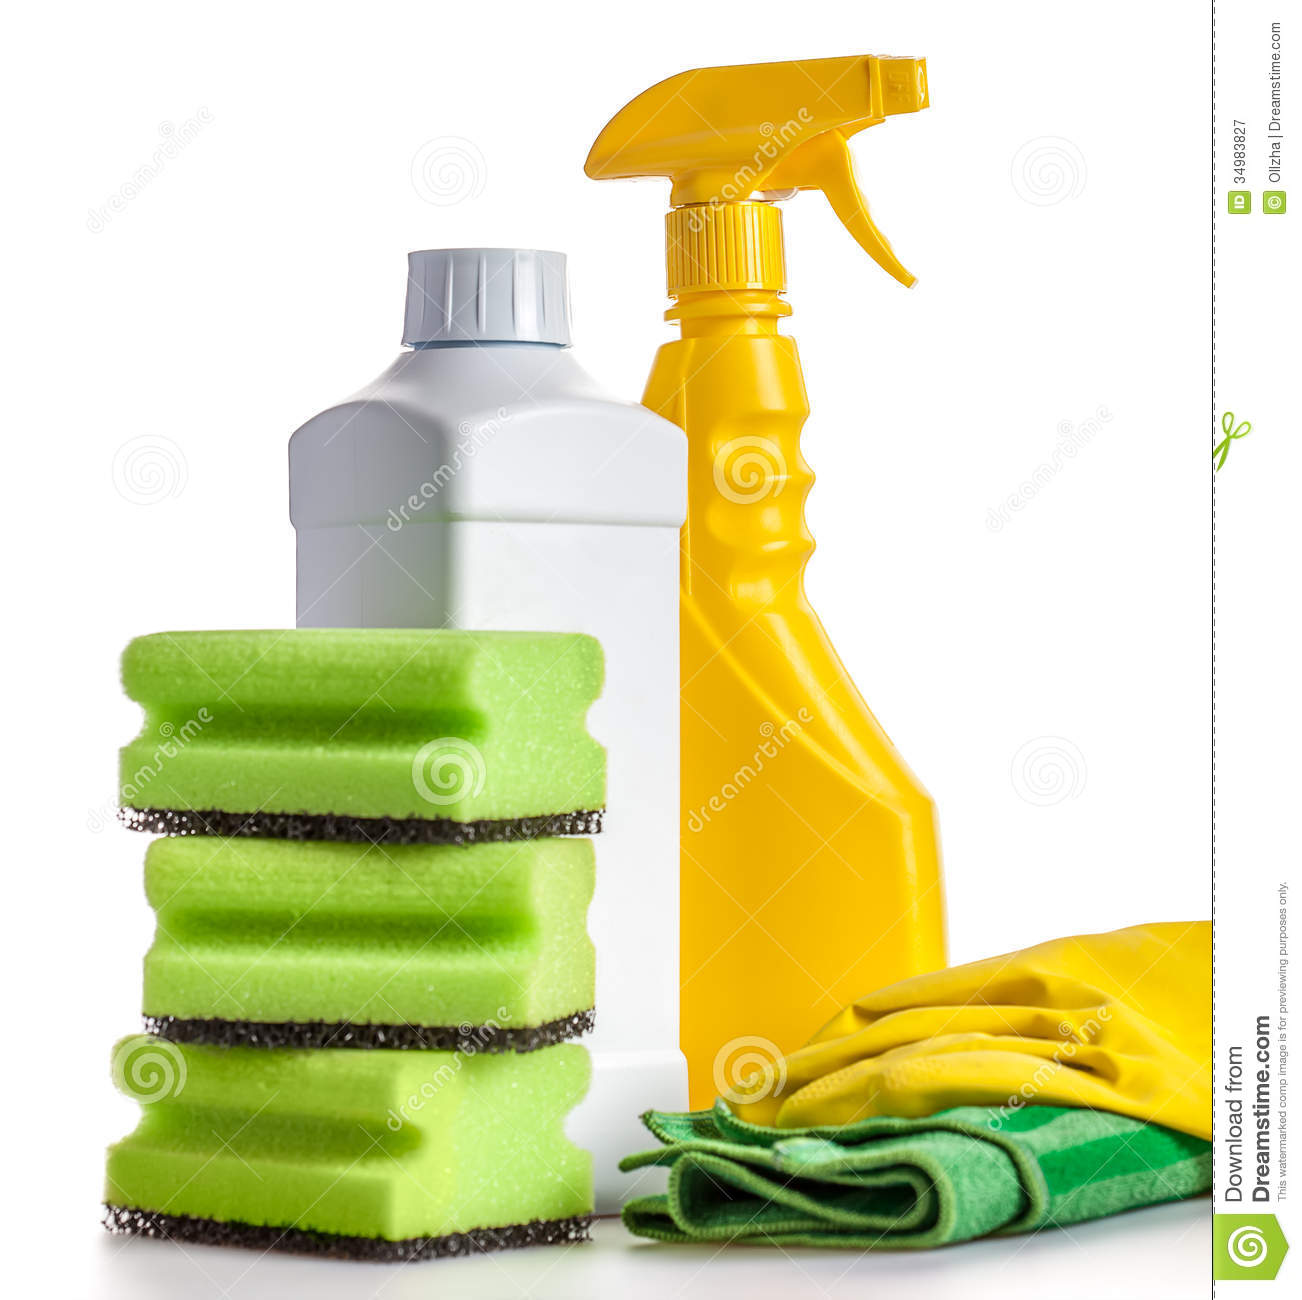 House cleaning tools stock image image of house for Free house photos